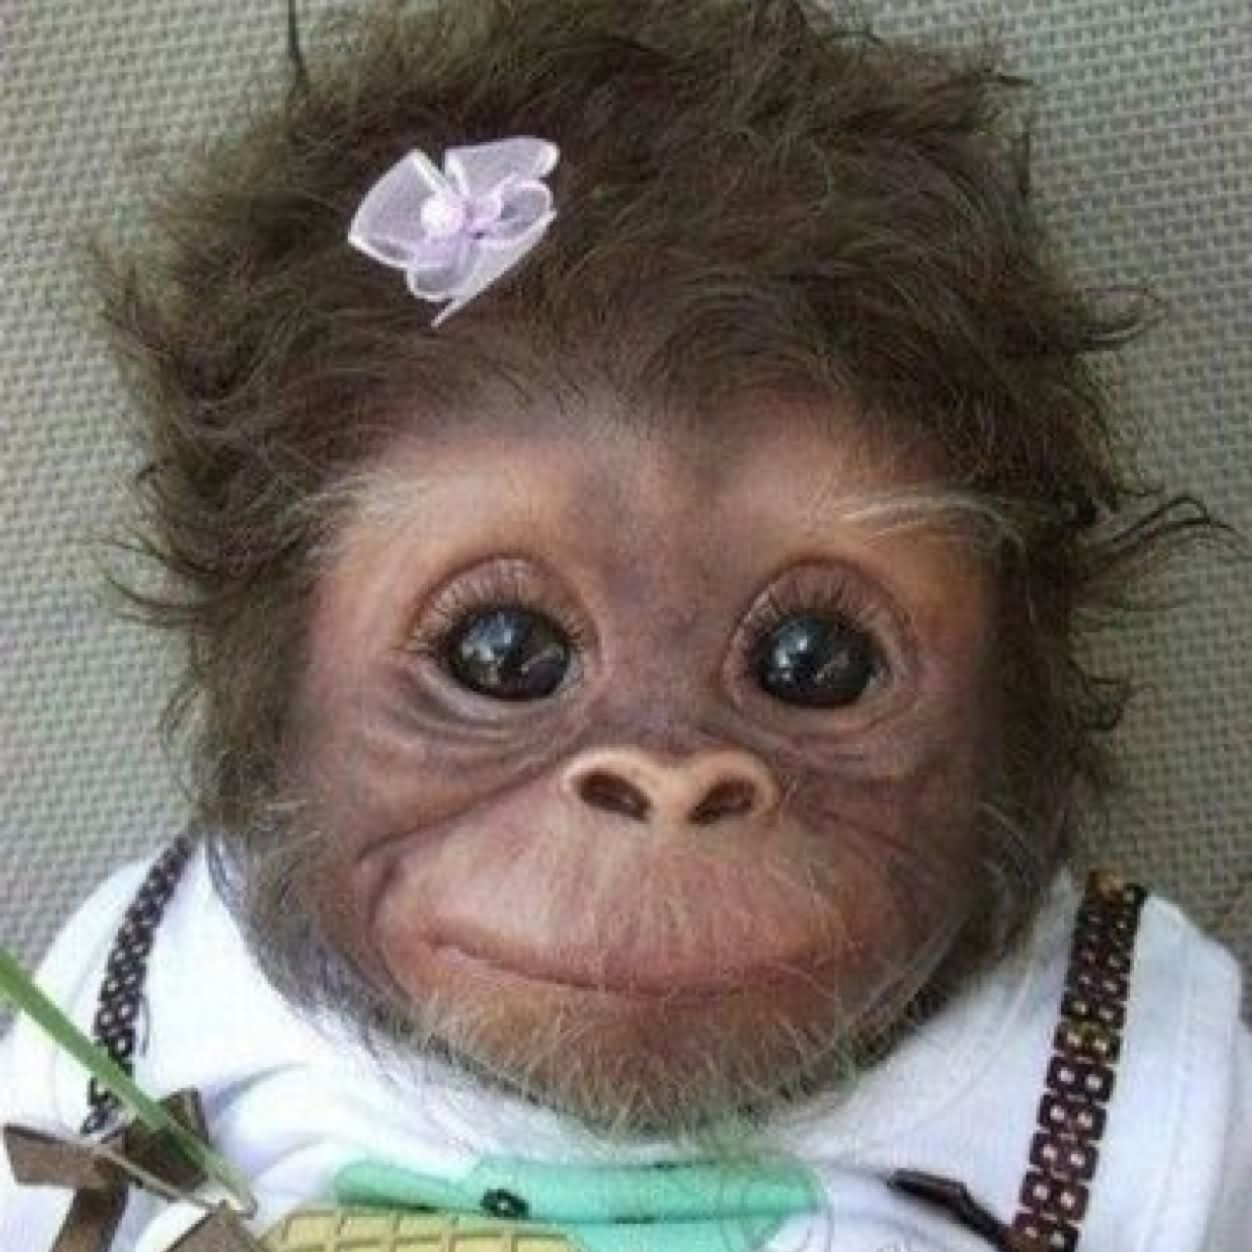 Baby monkey sad face funny picture